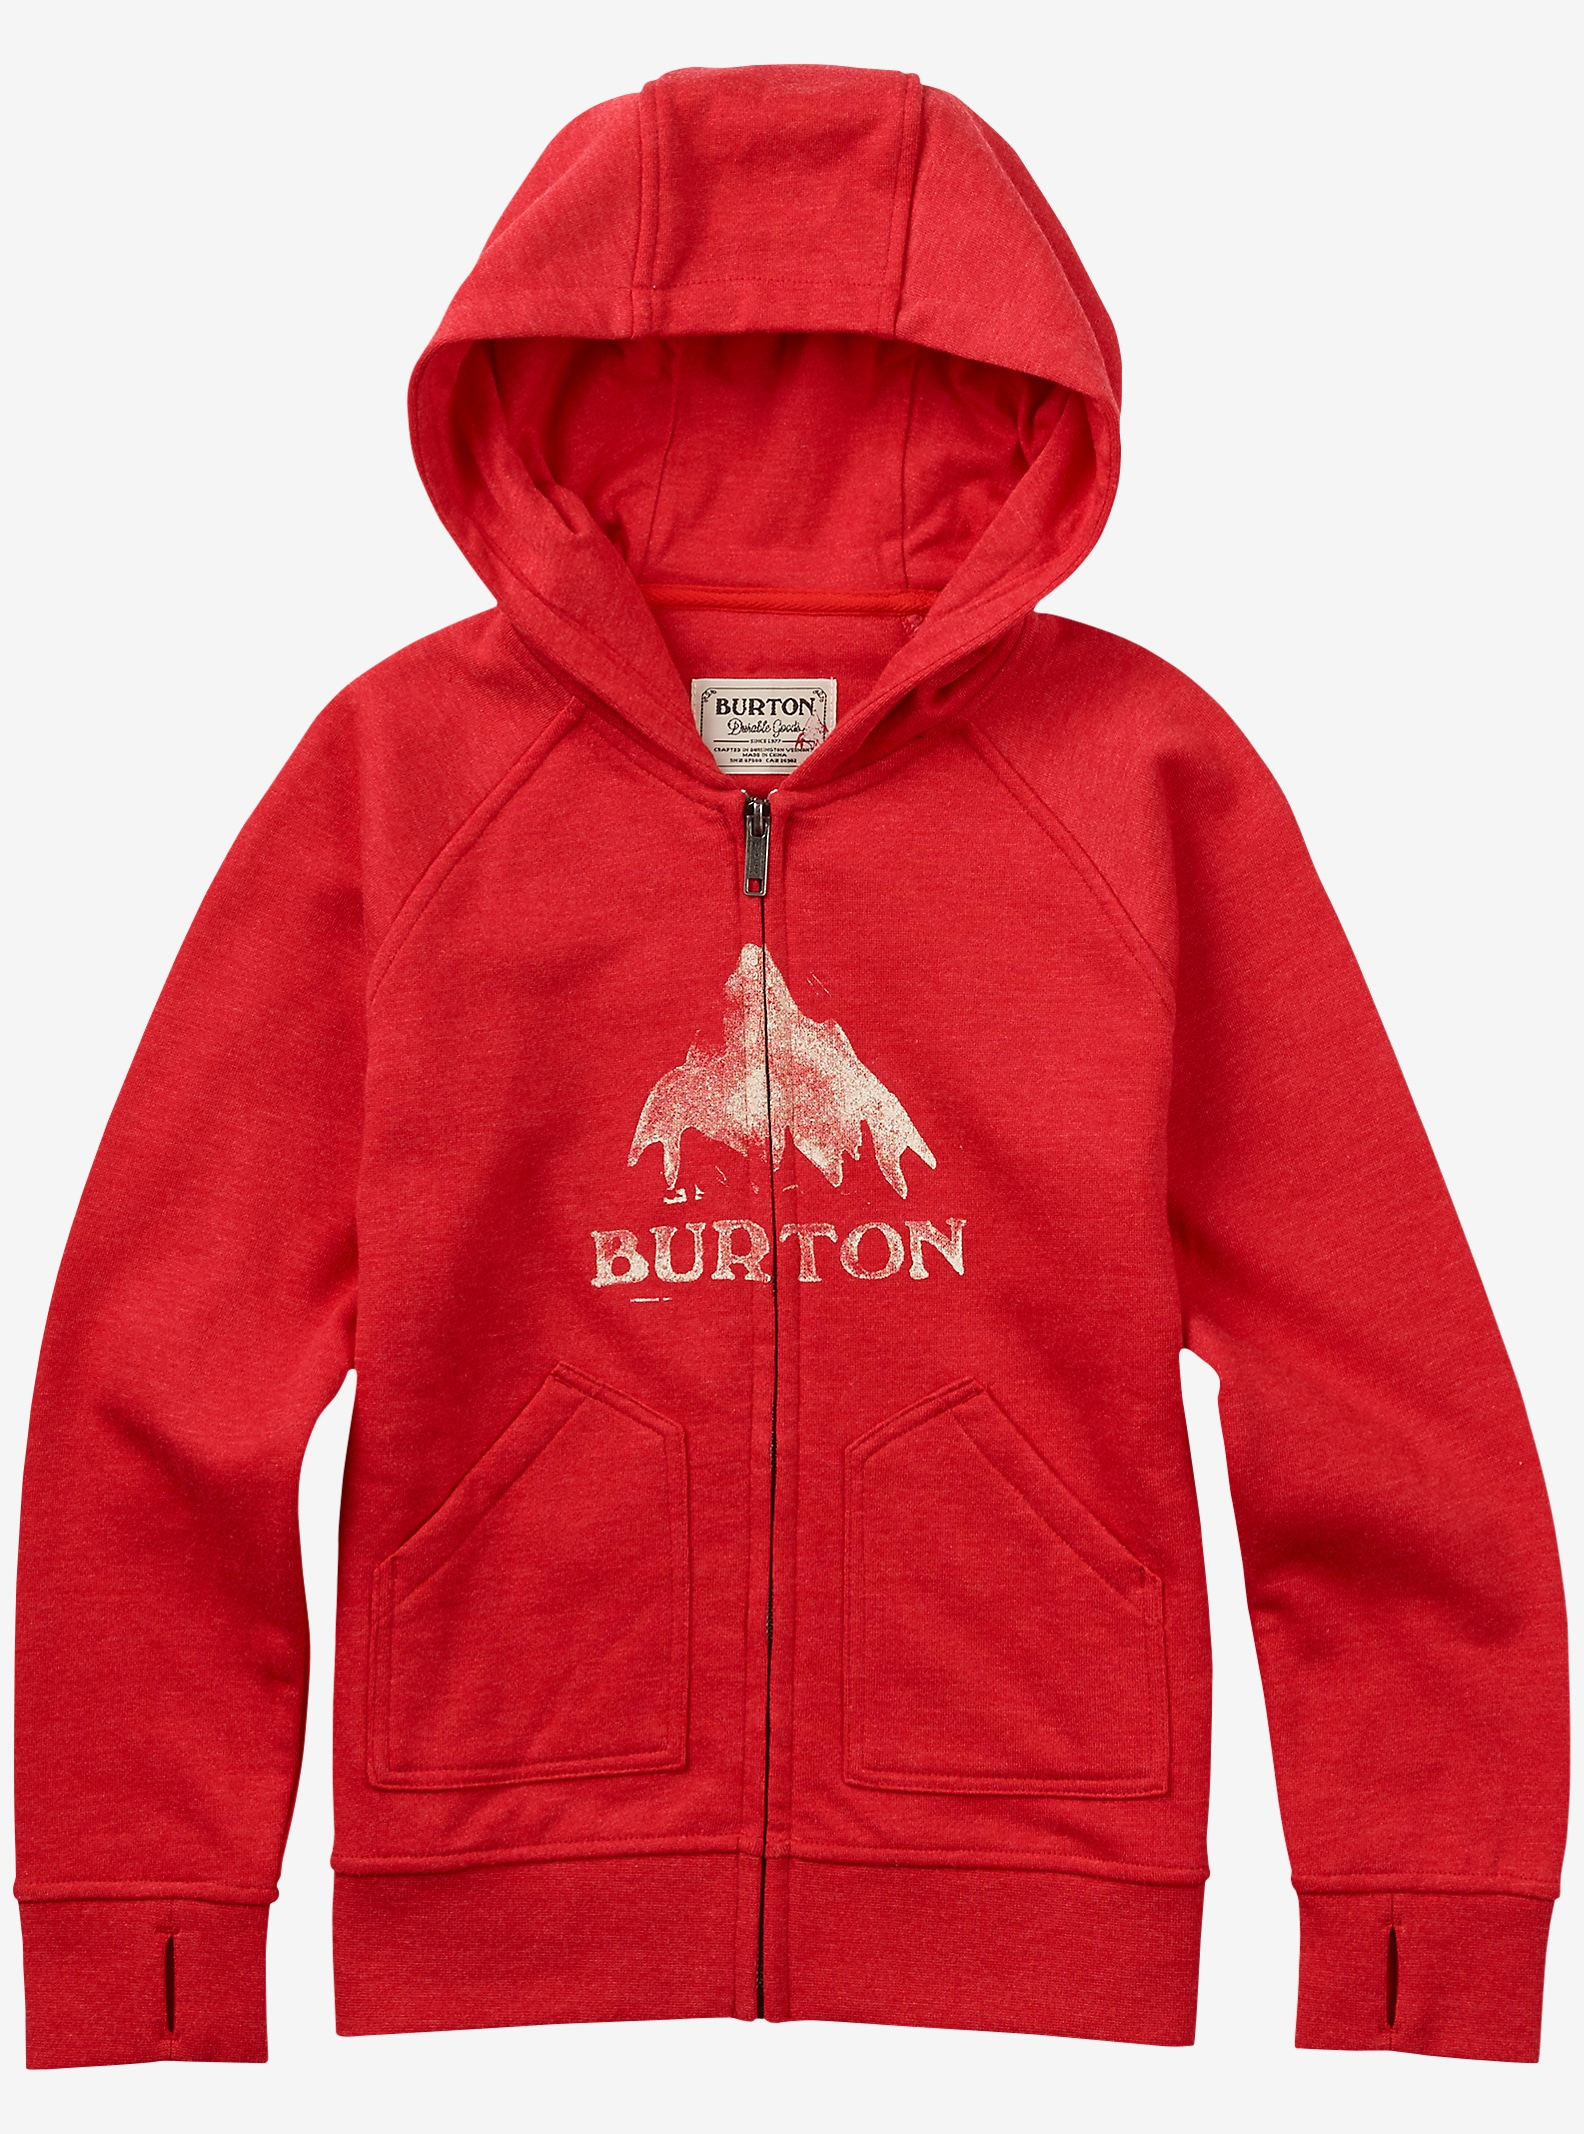 Burton Stamped MTN Full-Zip Hoodie shown in Coral